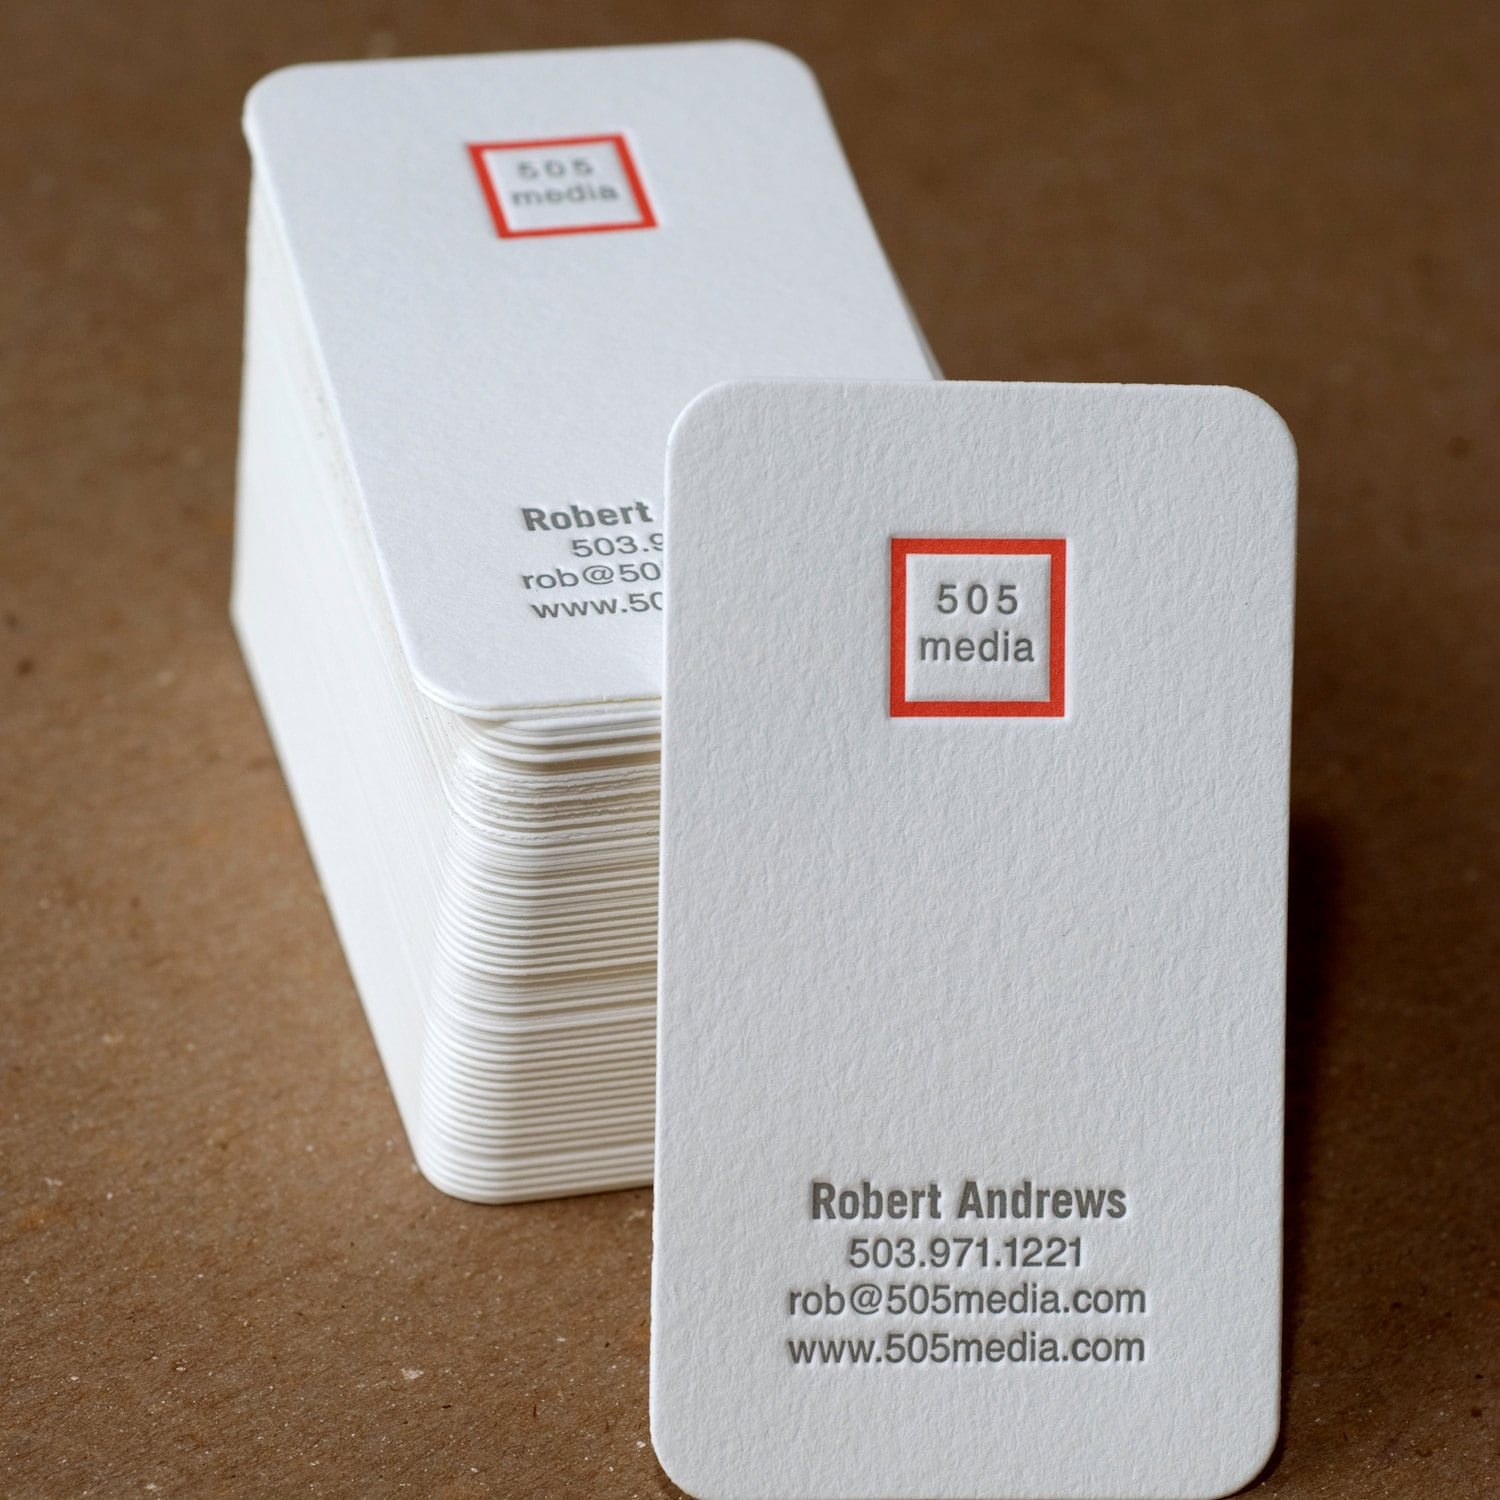 personalized calling cards - Dorit.mercatodos.co